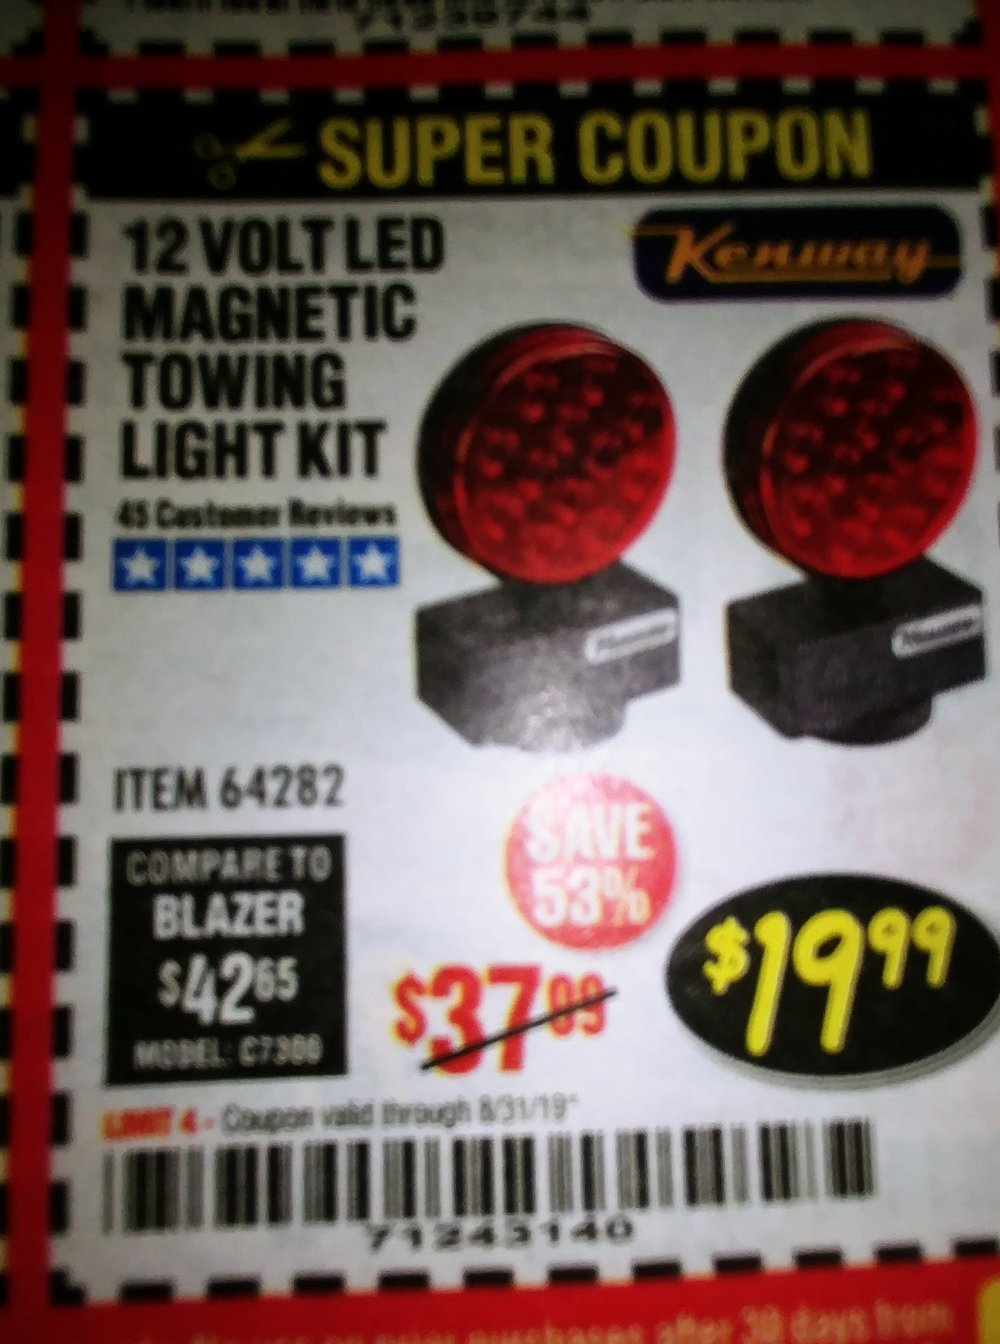 Harbor Freight Coupon, HF Coupons - 12 Volt Led Magnetic Towing Light Kit